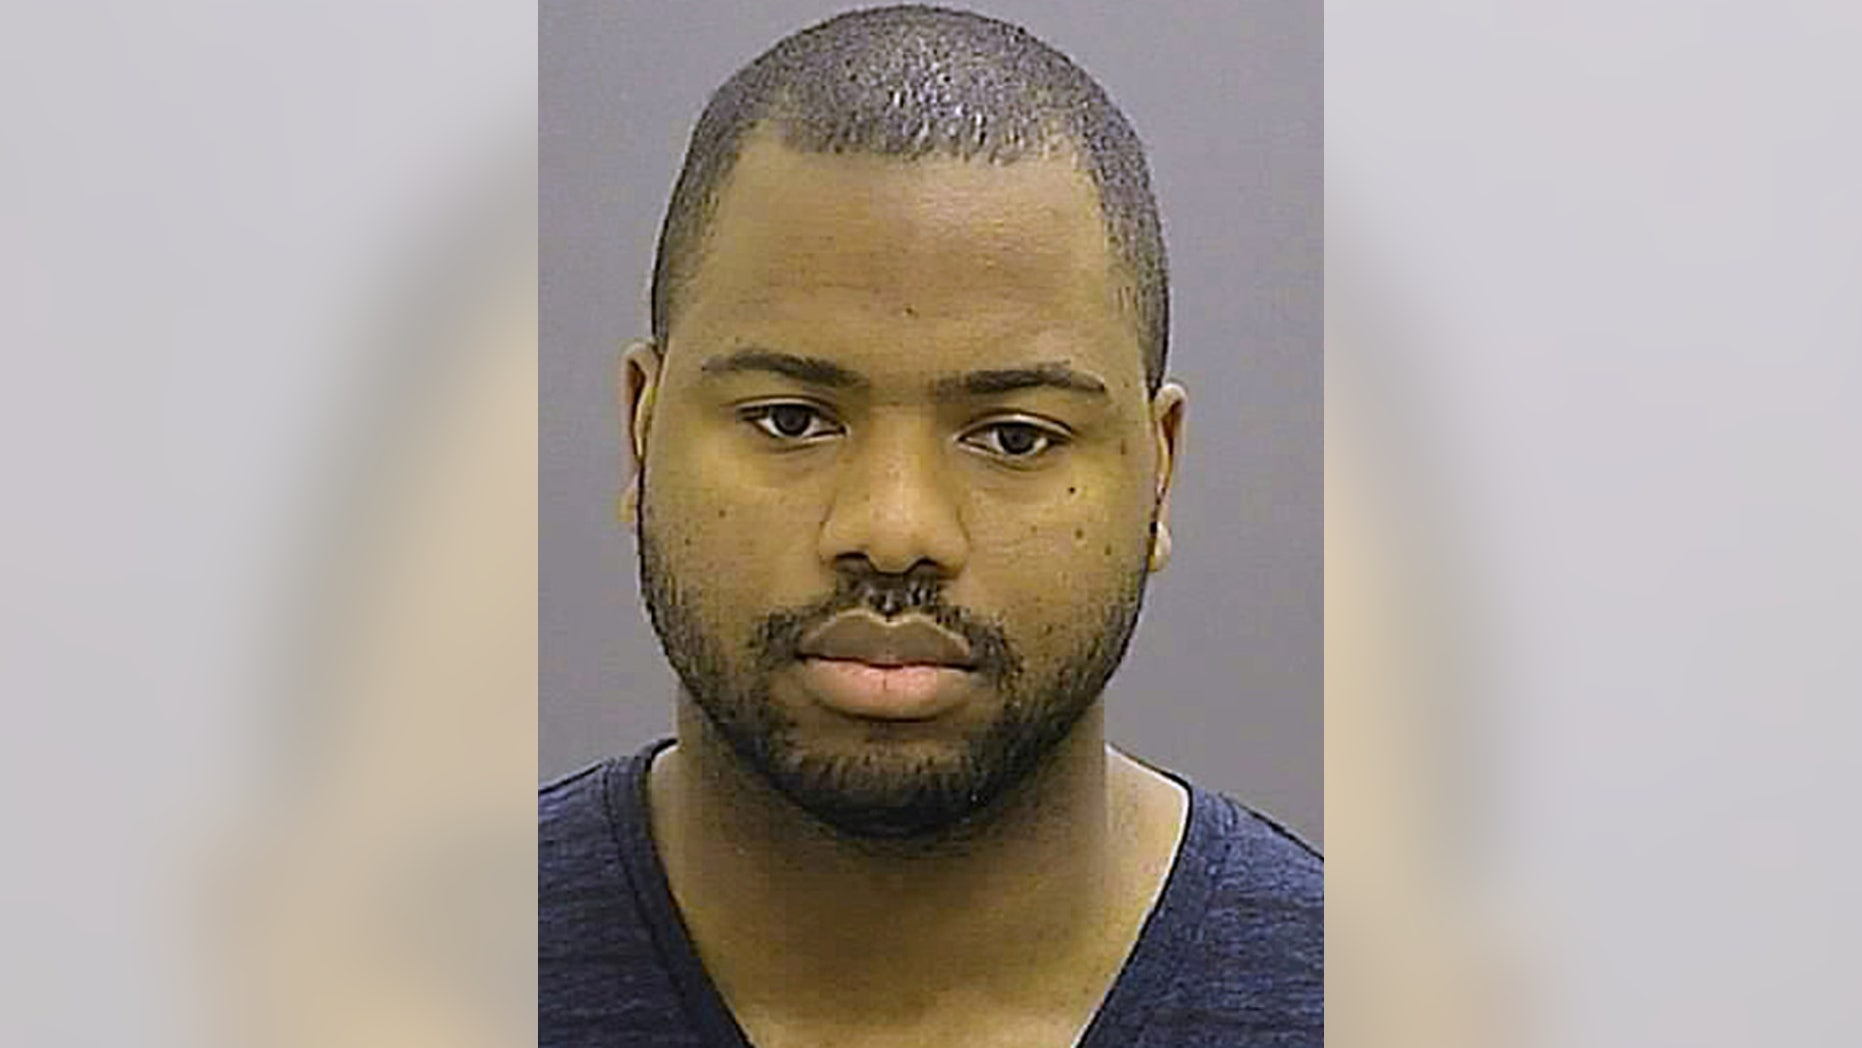 FILE - This Friday, May 1, 2015 file photo provided by the Baltimore Police Department shows William G. Porter, one of six Baltimore city police officers charged in connection to the death of Freddie Gray. (Baltimore Police Department via AP, File)